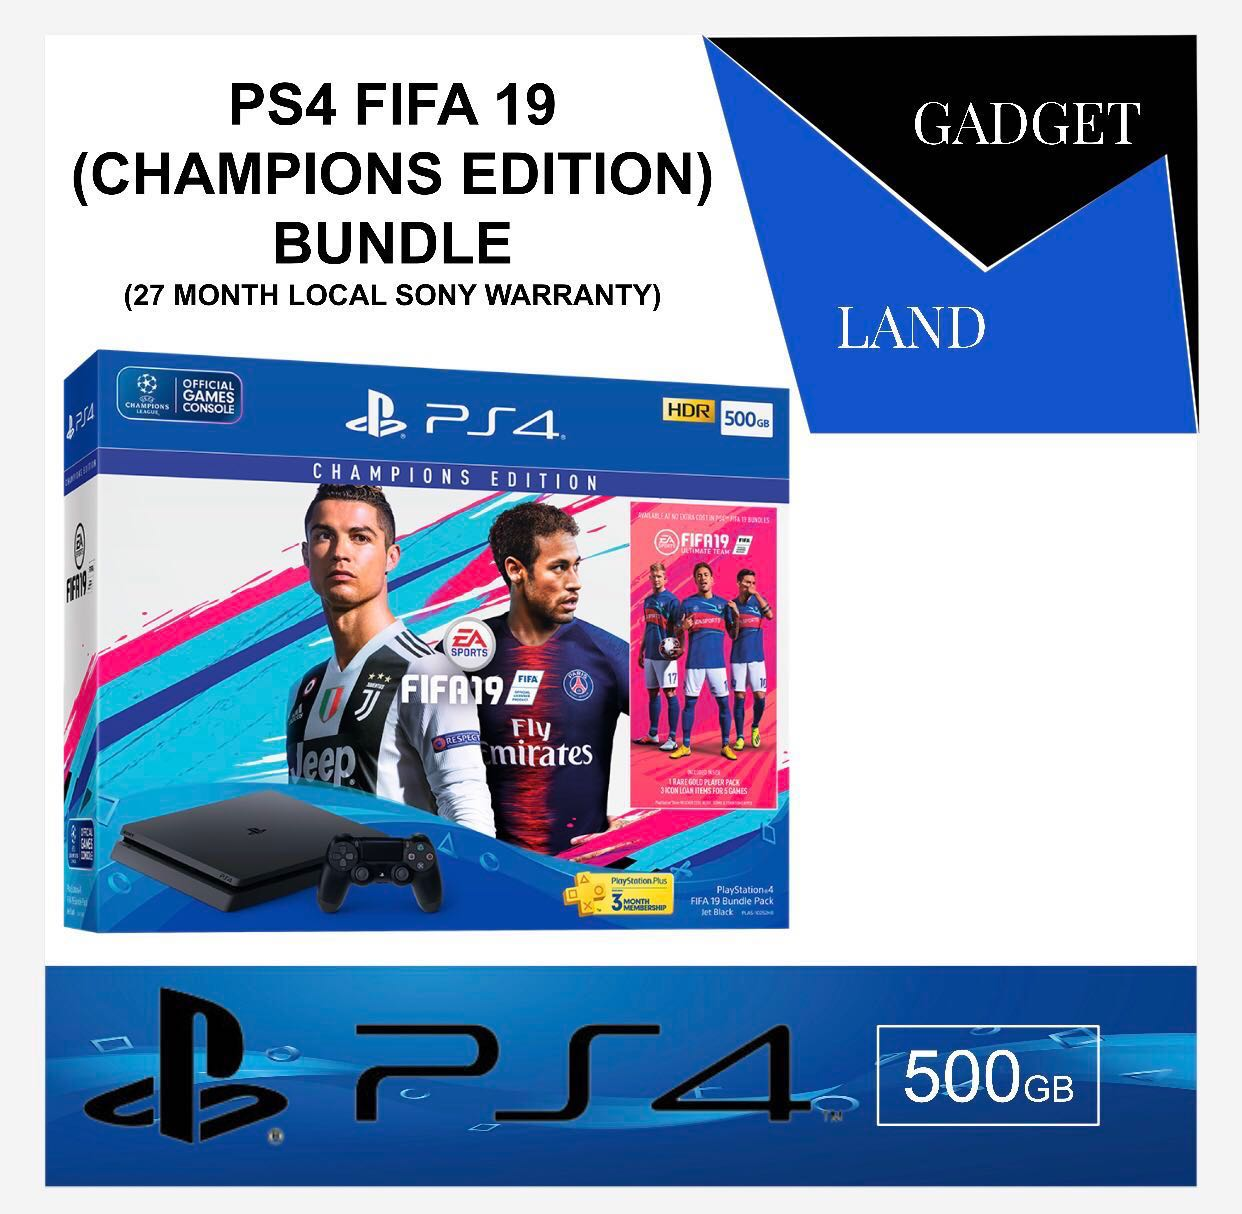 Brand New Ps4 Fifa 19 Bundle Toys Games Video Gaming Consoles Sony 500gb Dvd 2015 Photo